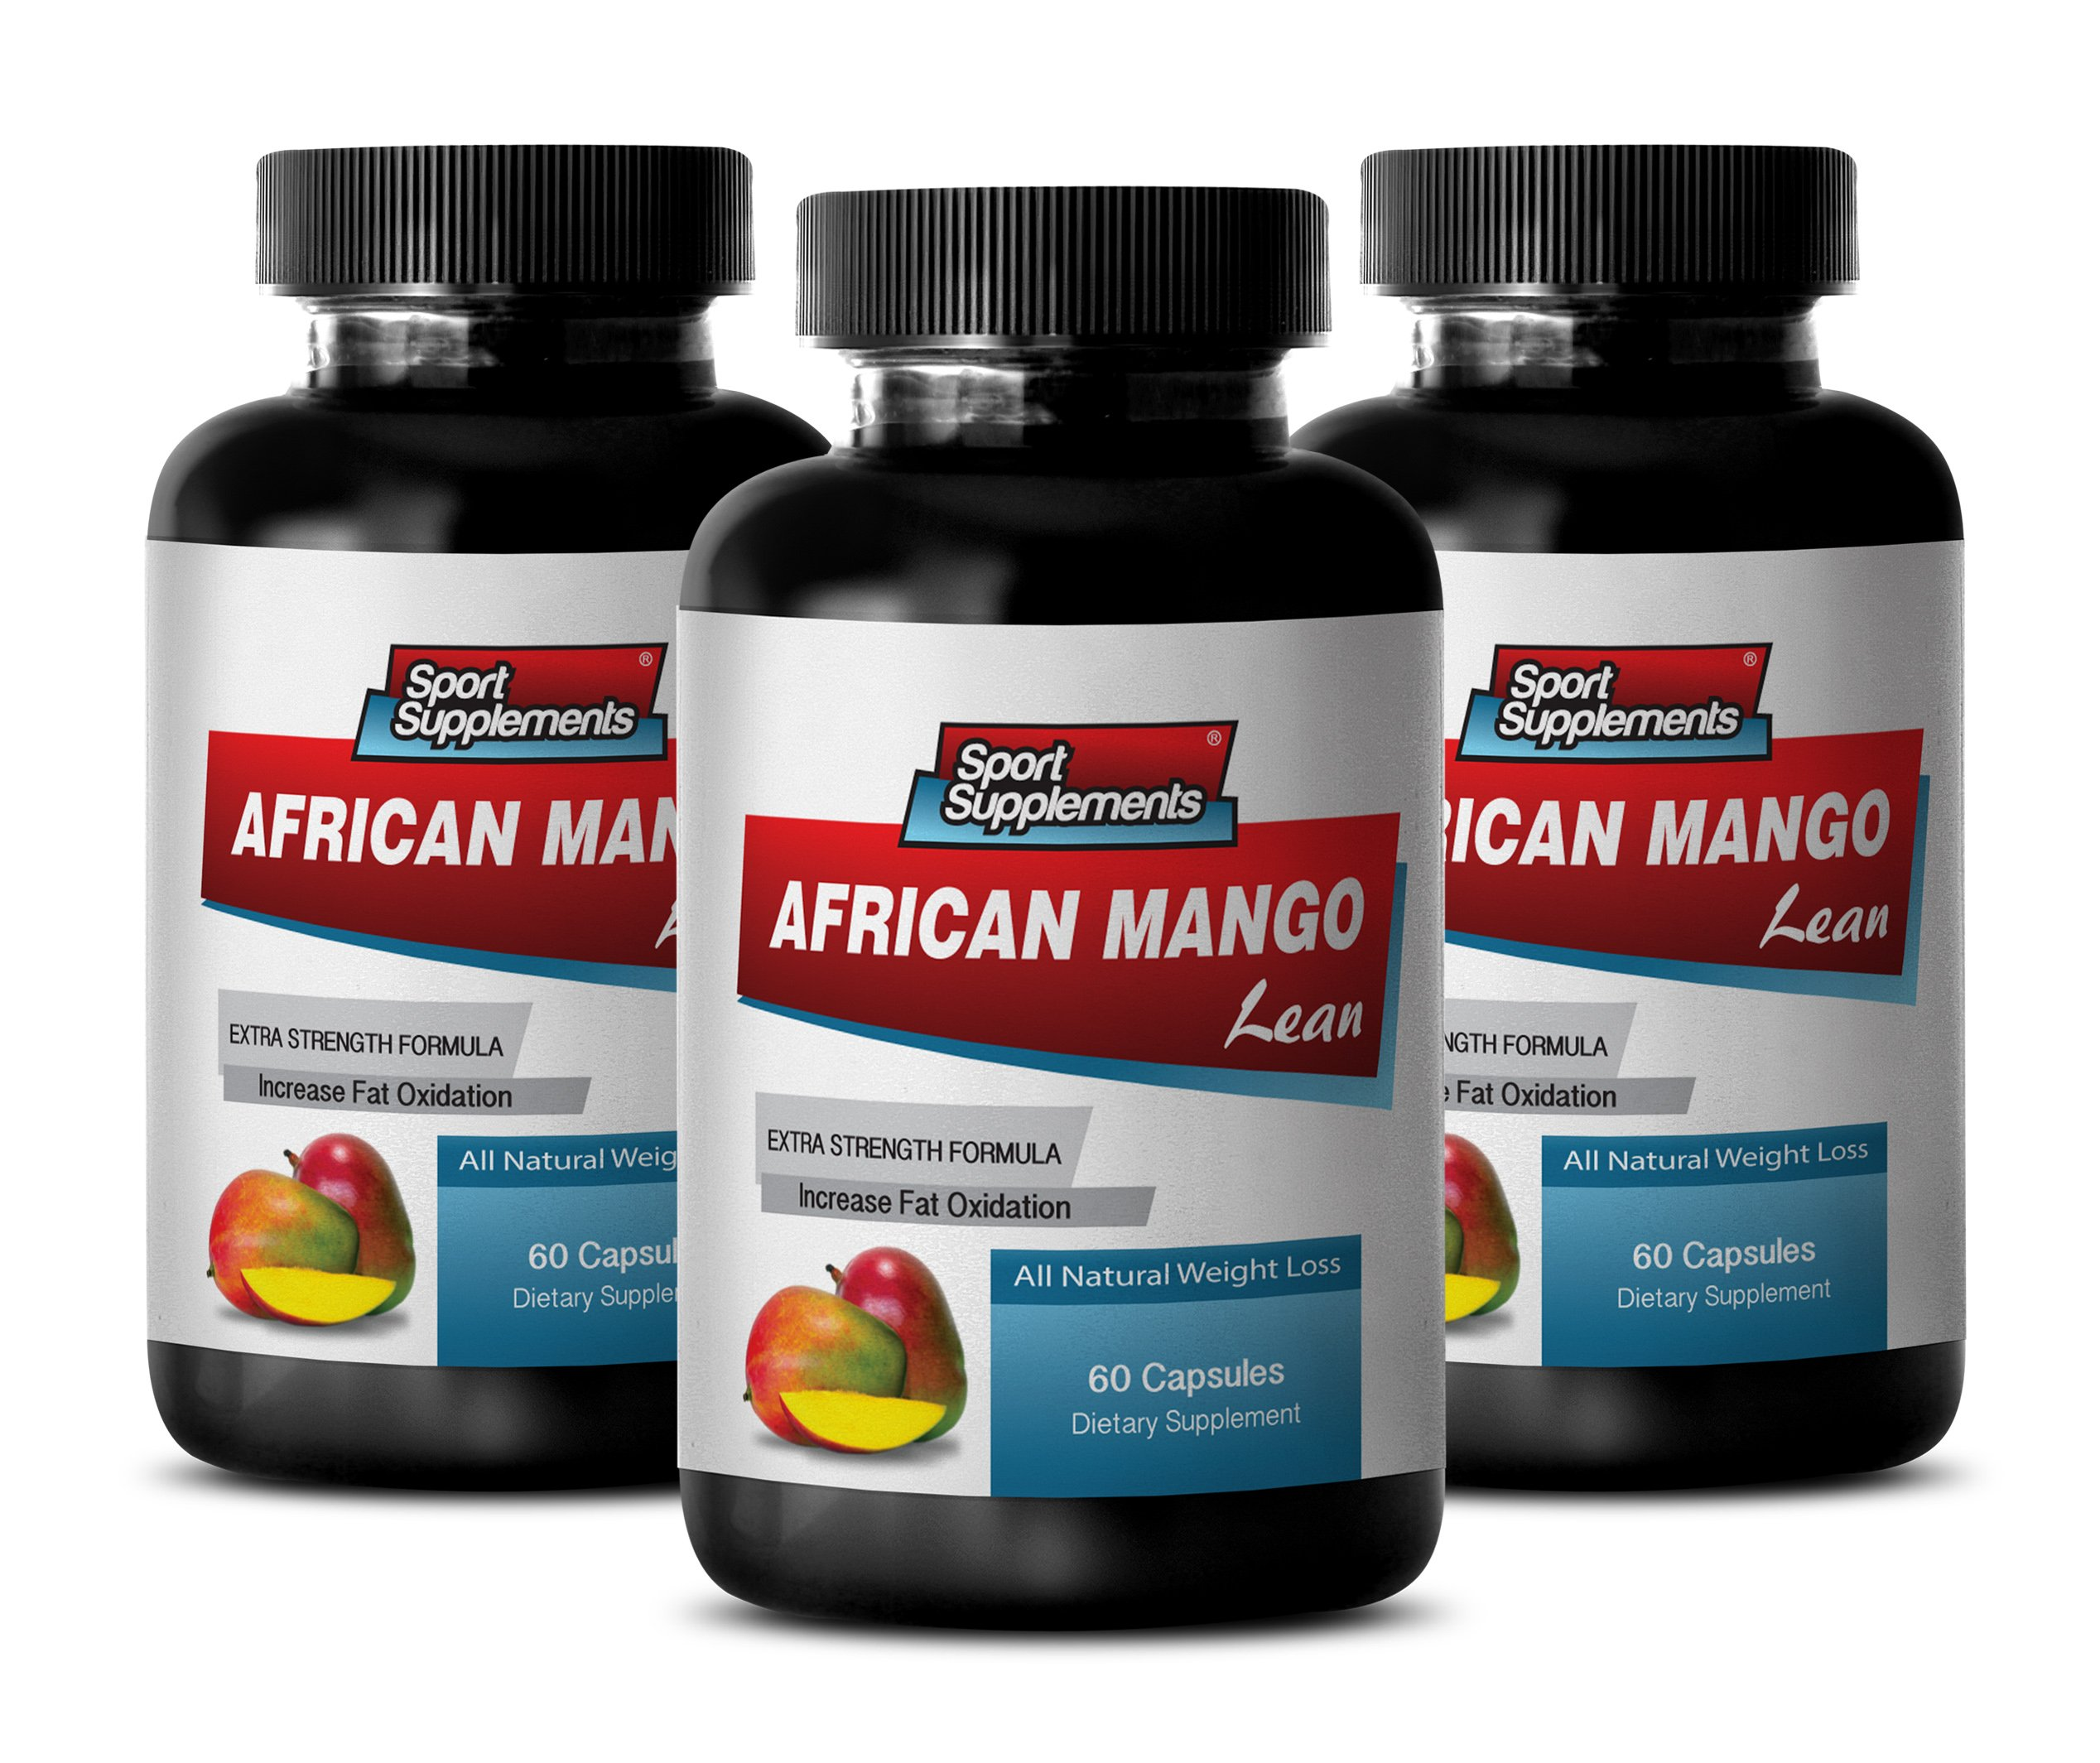 Weight loss diet fat supplements - AFRICAN MANGO EXTRACT with Green Tea, Resveratrol, Kelp, Grapefruit 1200 Mg - African mango slender - 3 Bottles 180 capsules by Sport Supplements